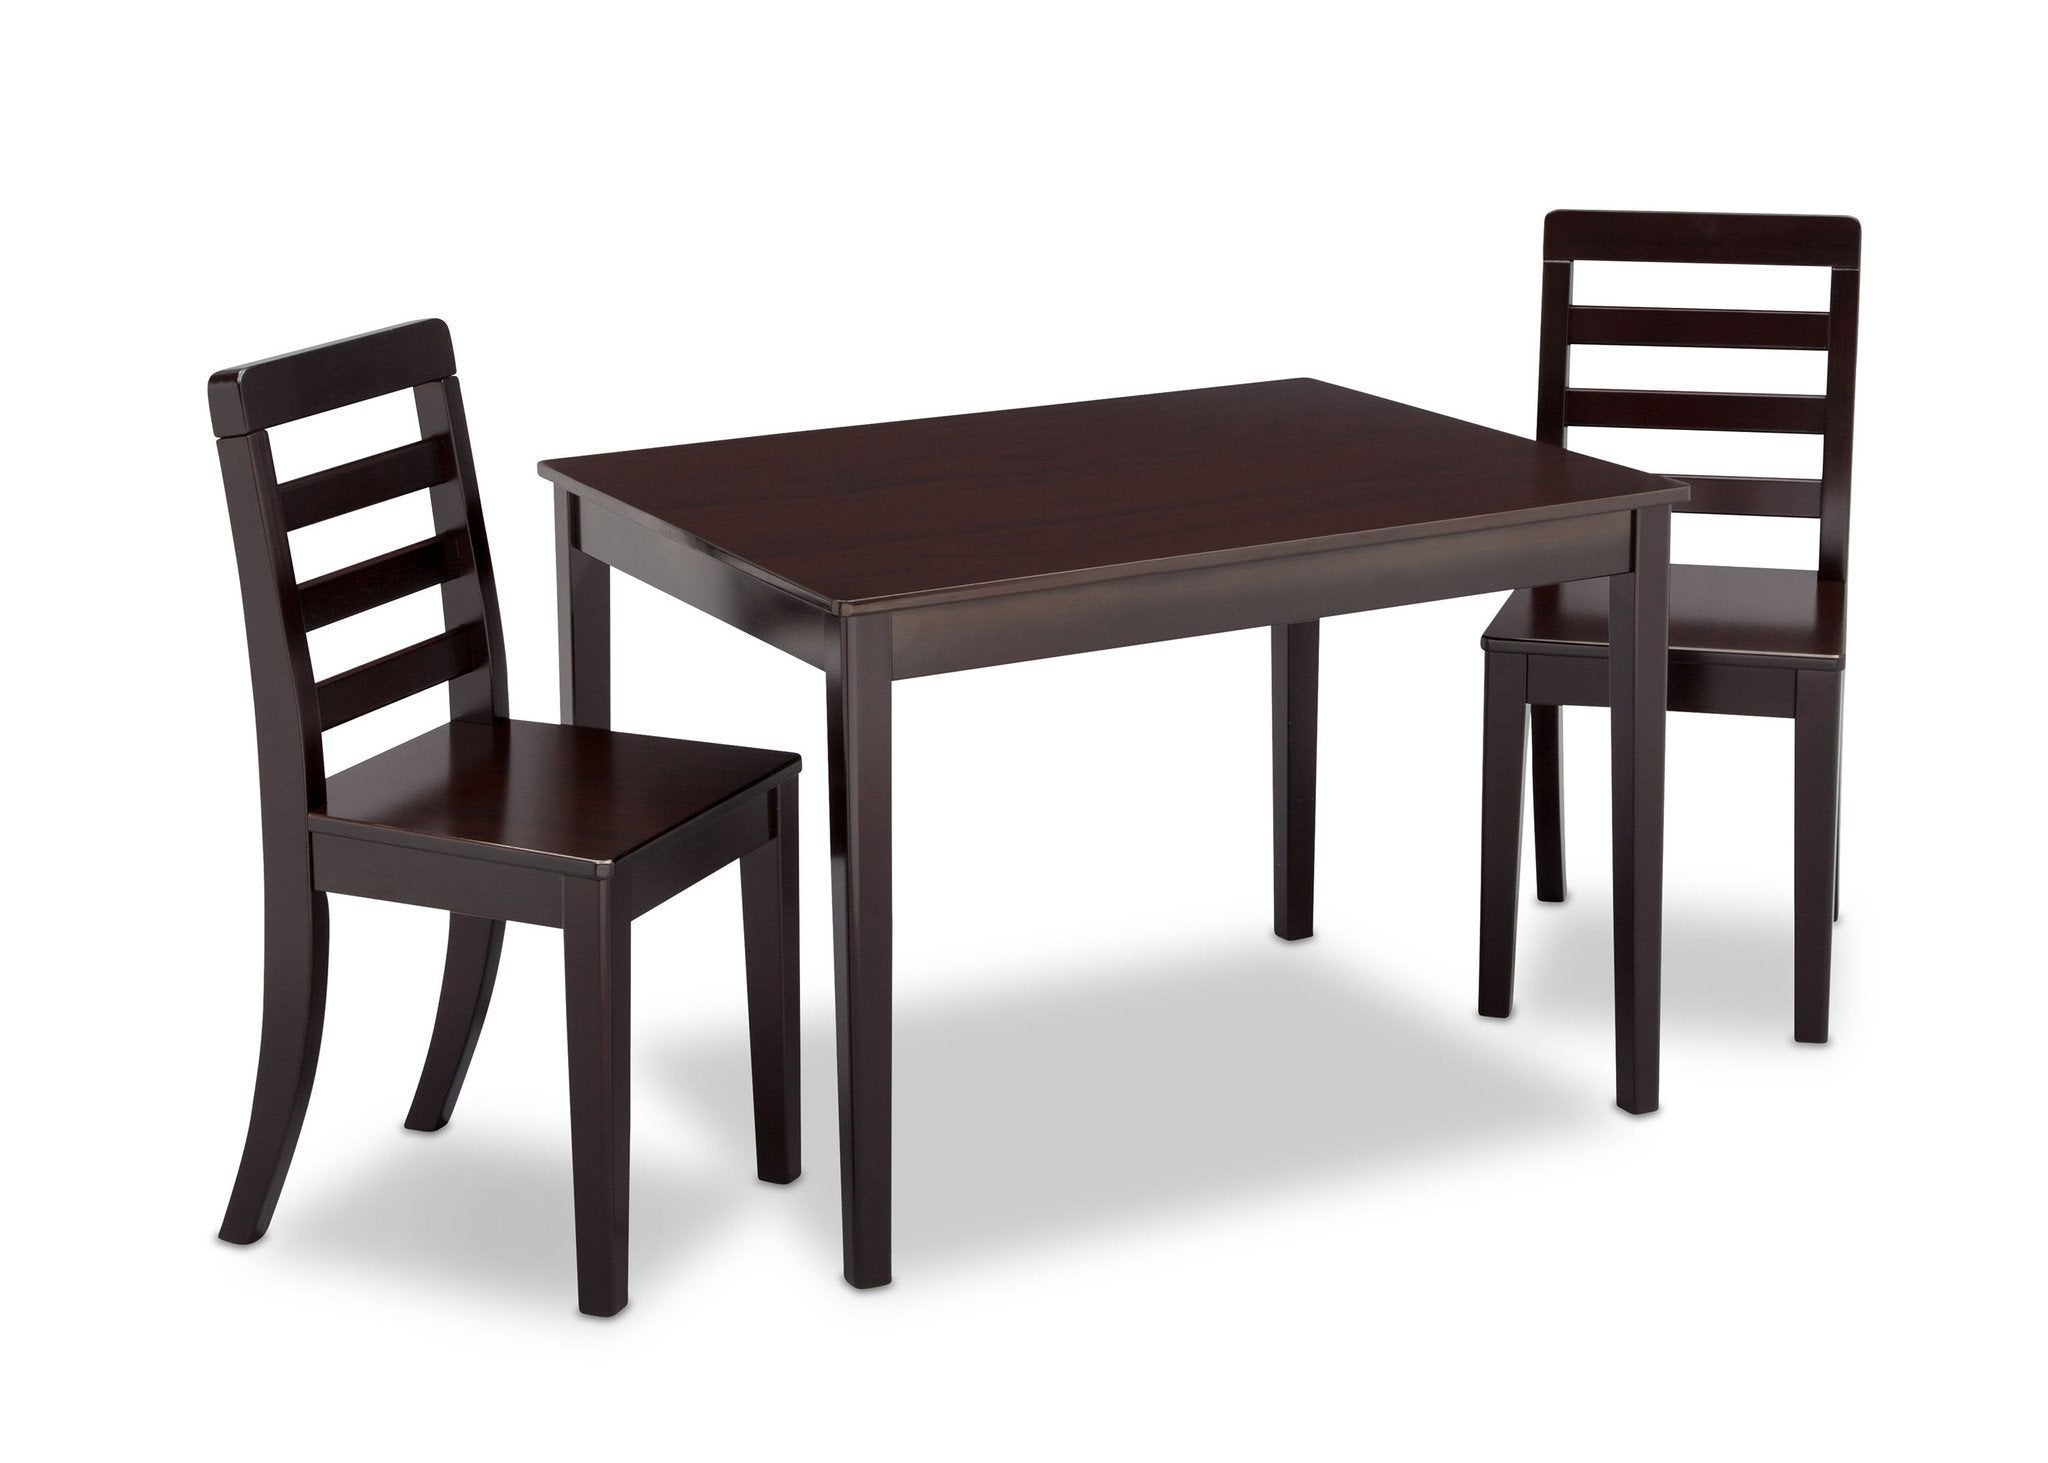 Delta Children Dark Chocolate (207) Gateway Table u0026 2 Chair Set Right View ...  sc 1 st  Delta Children : wooden table and 2 chairs set - pezcame.com